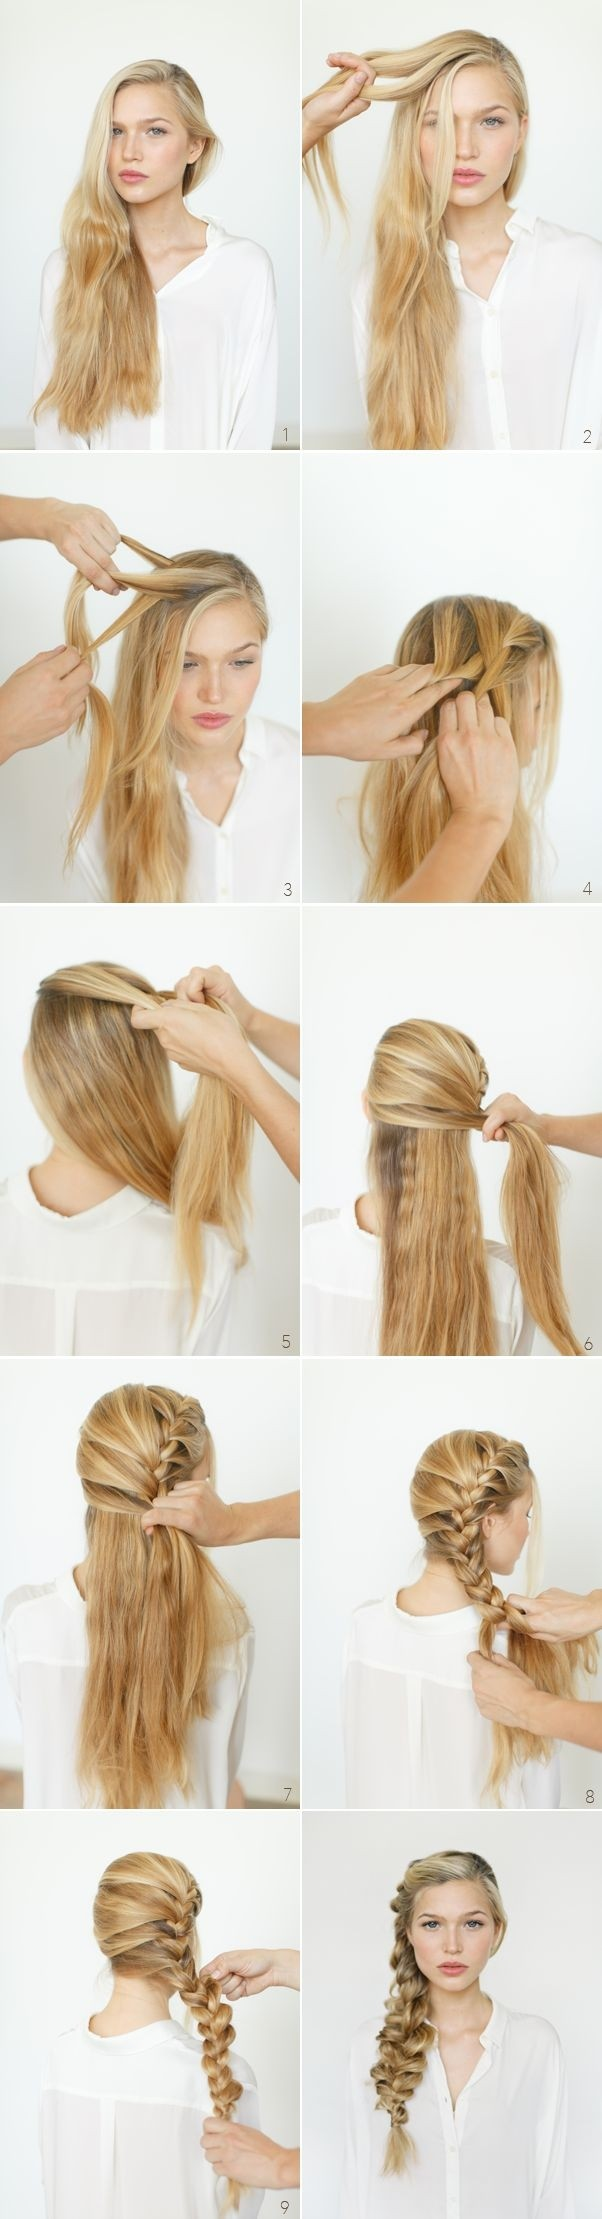 Side Braided Hairstyle for Long Hair